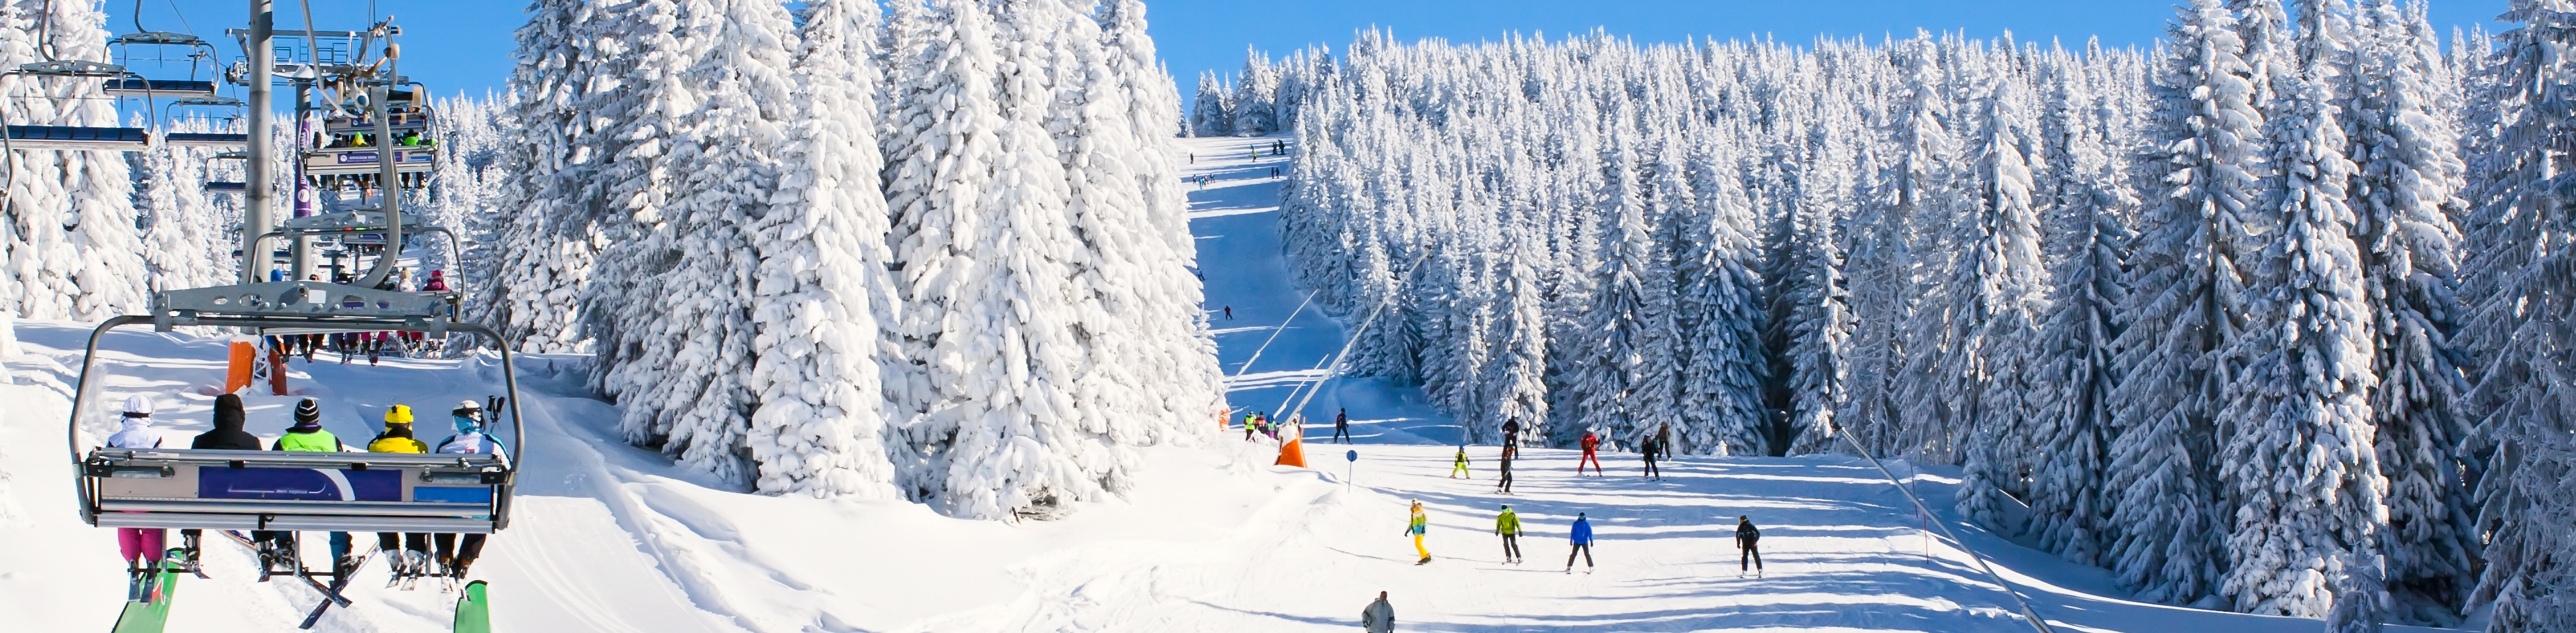 people ski down a slope with a chair lift carrying people up the mountain. Blue sky and snow-covered trees